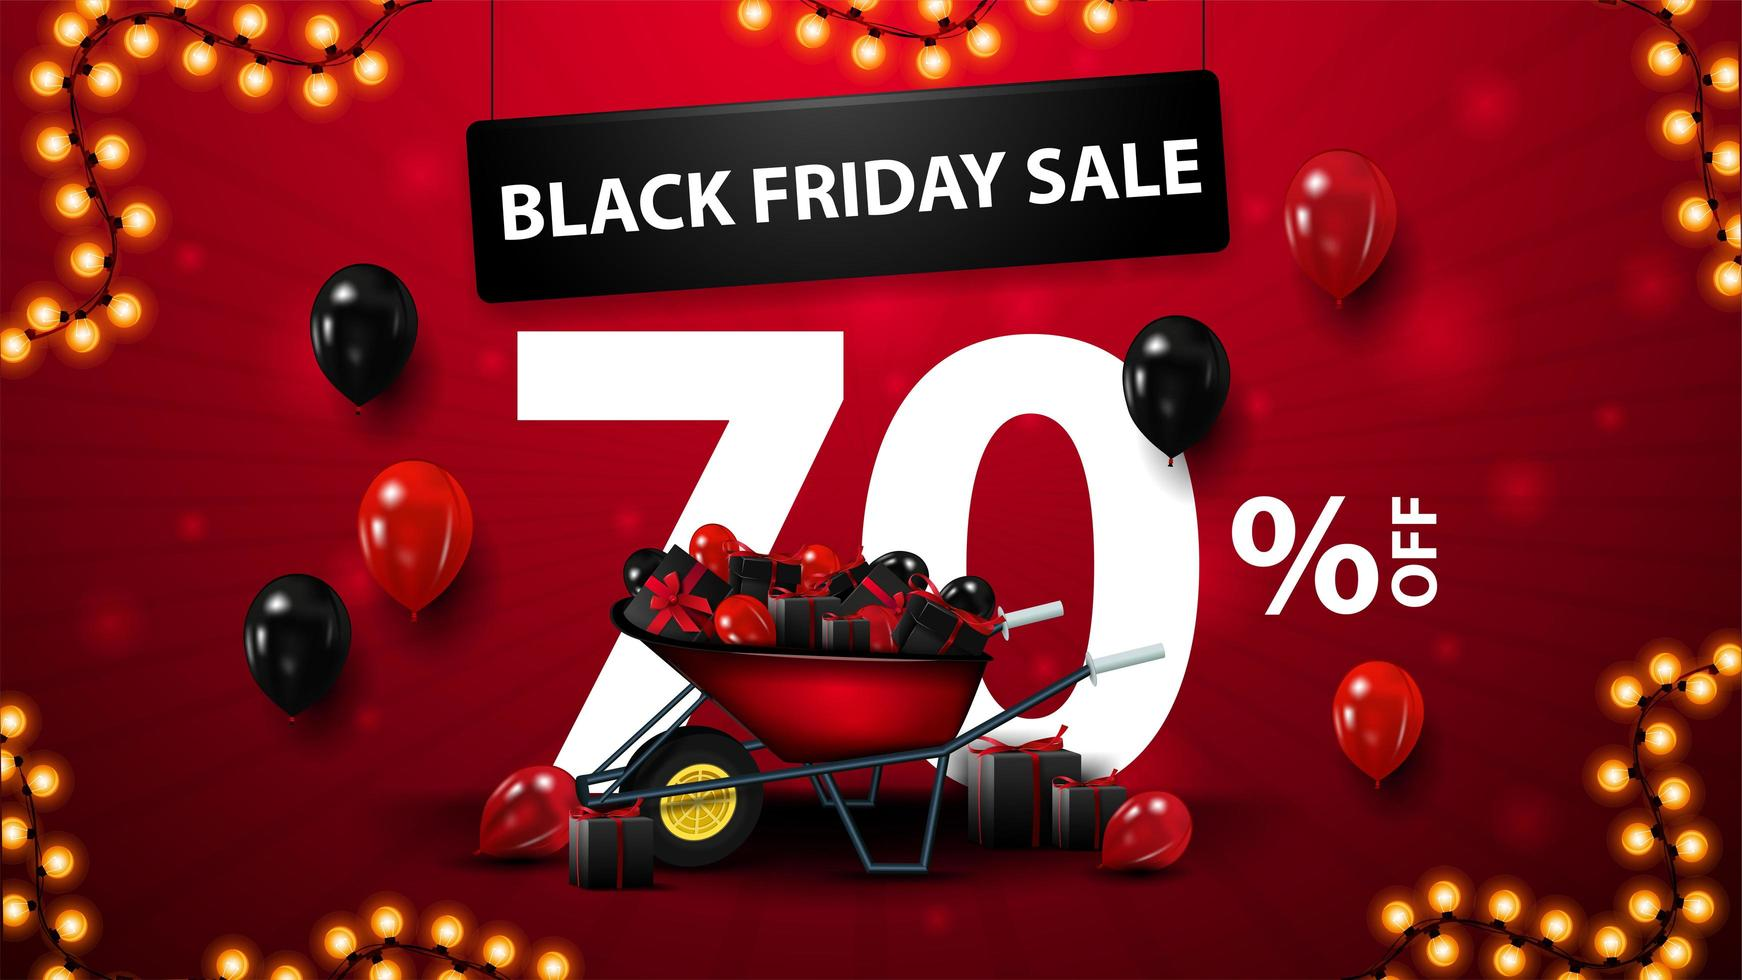 Black Friday Sale, up to 70 off banner vector